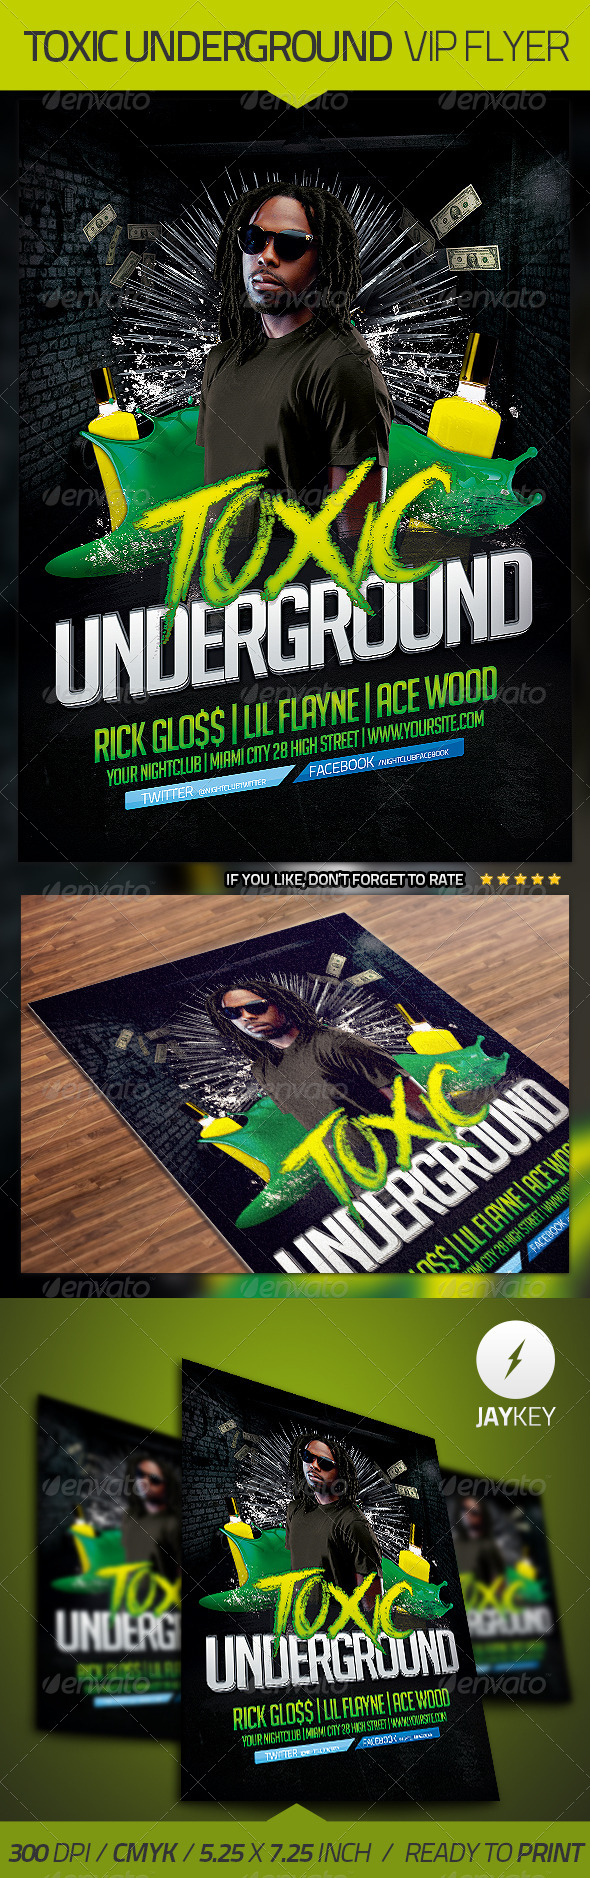 Underground Flyer Template - Clubs & Parties Events